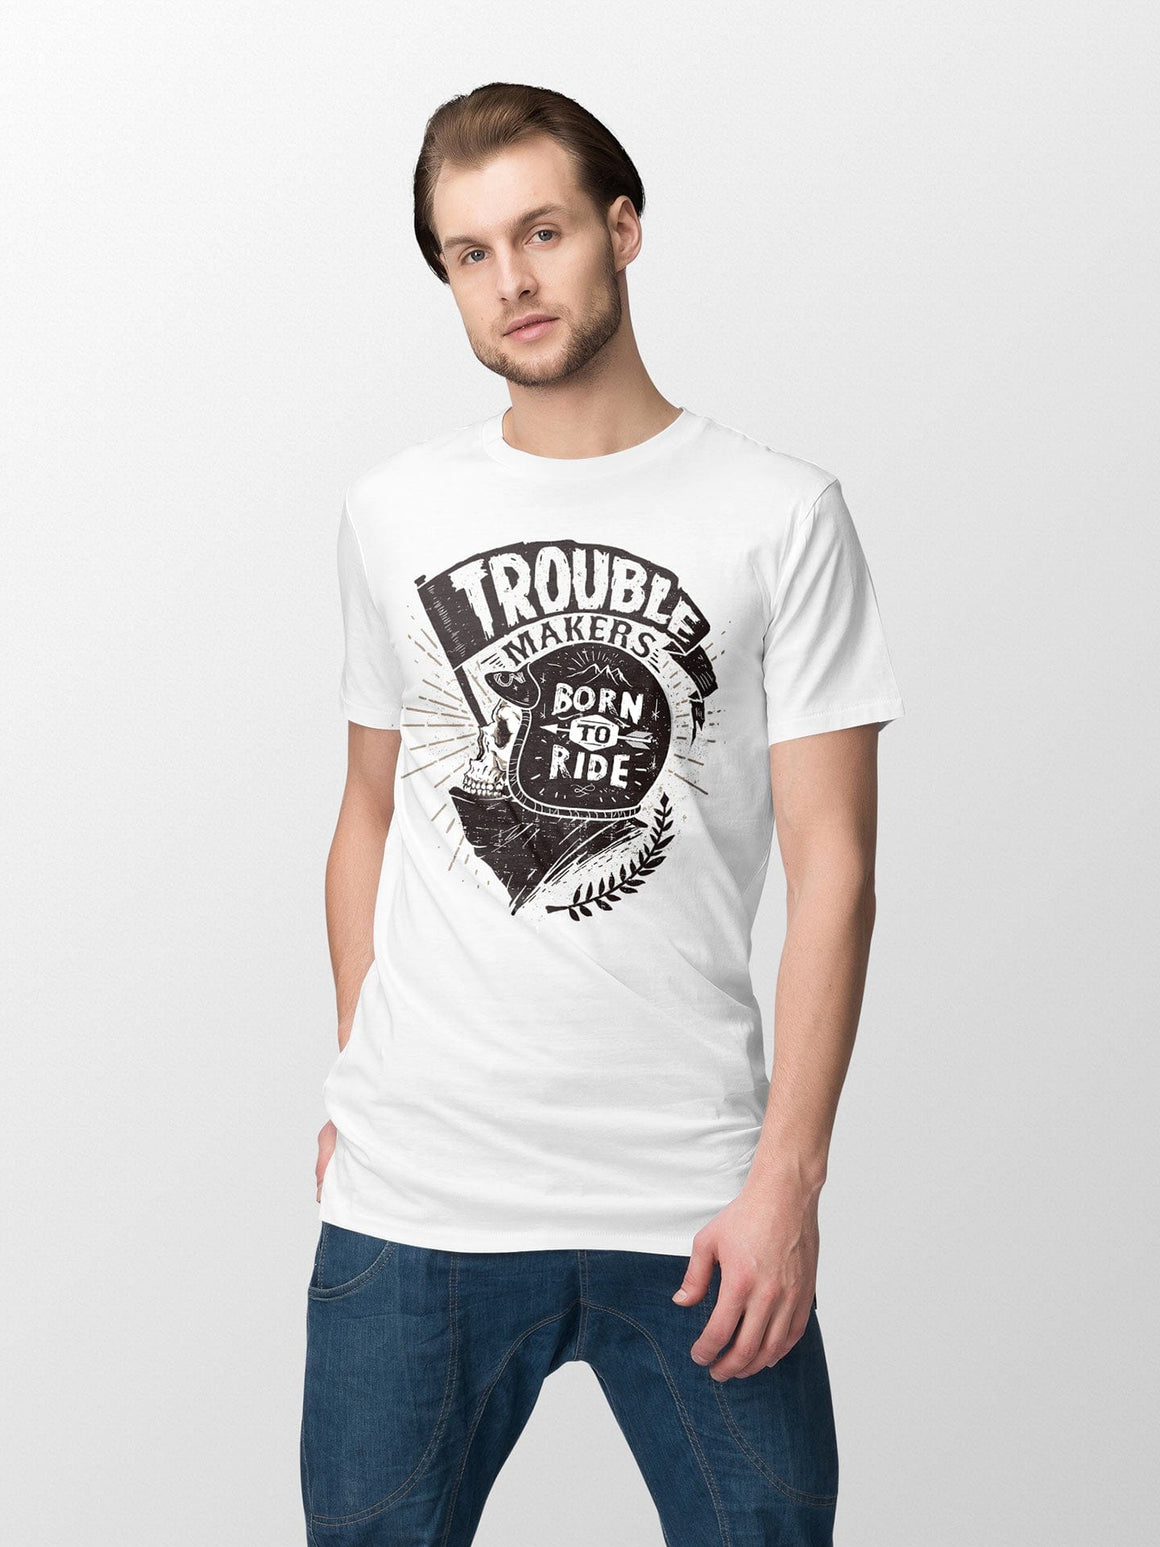 Trouble Makers - Men's Tee by DIRT & GLORY